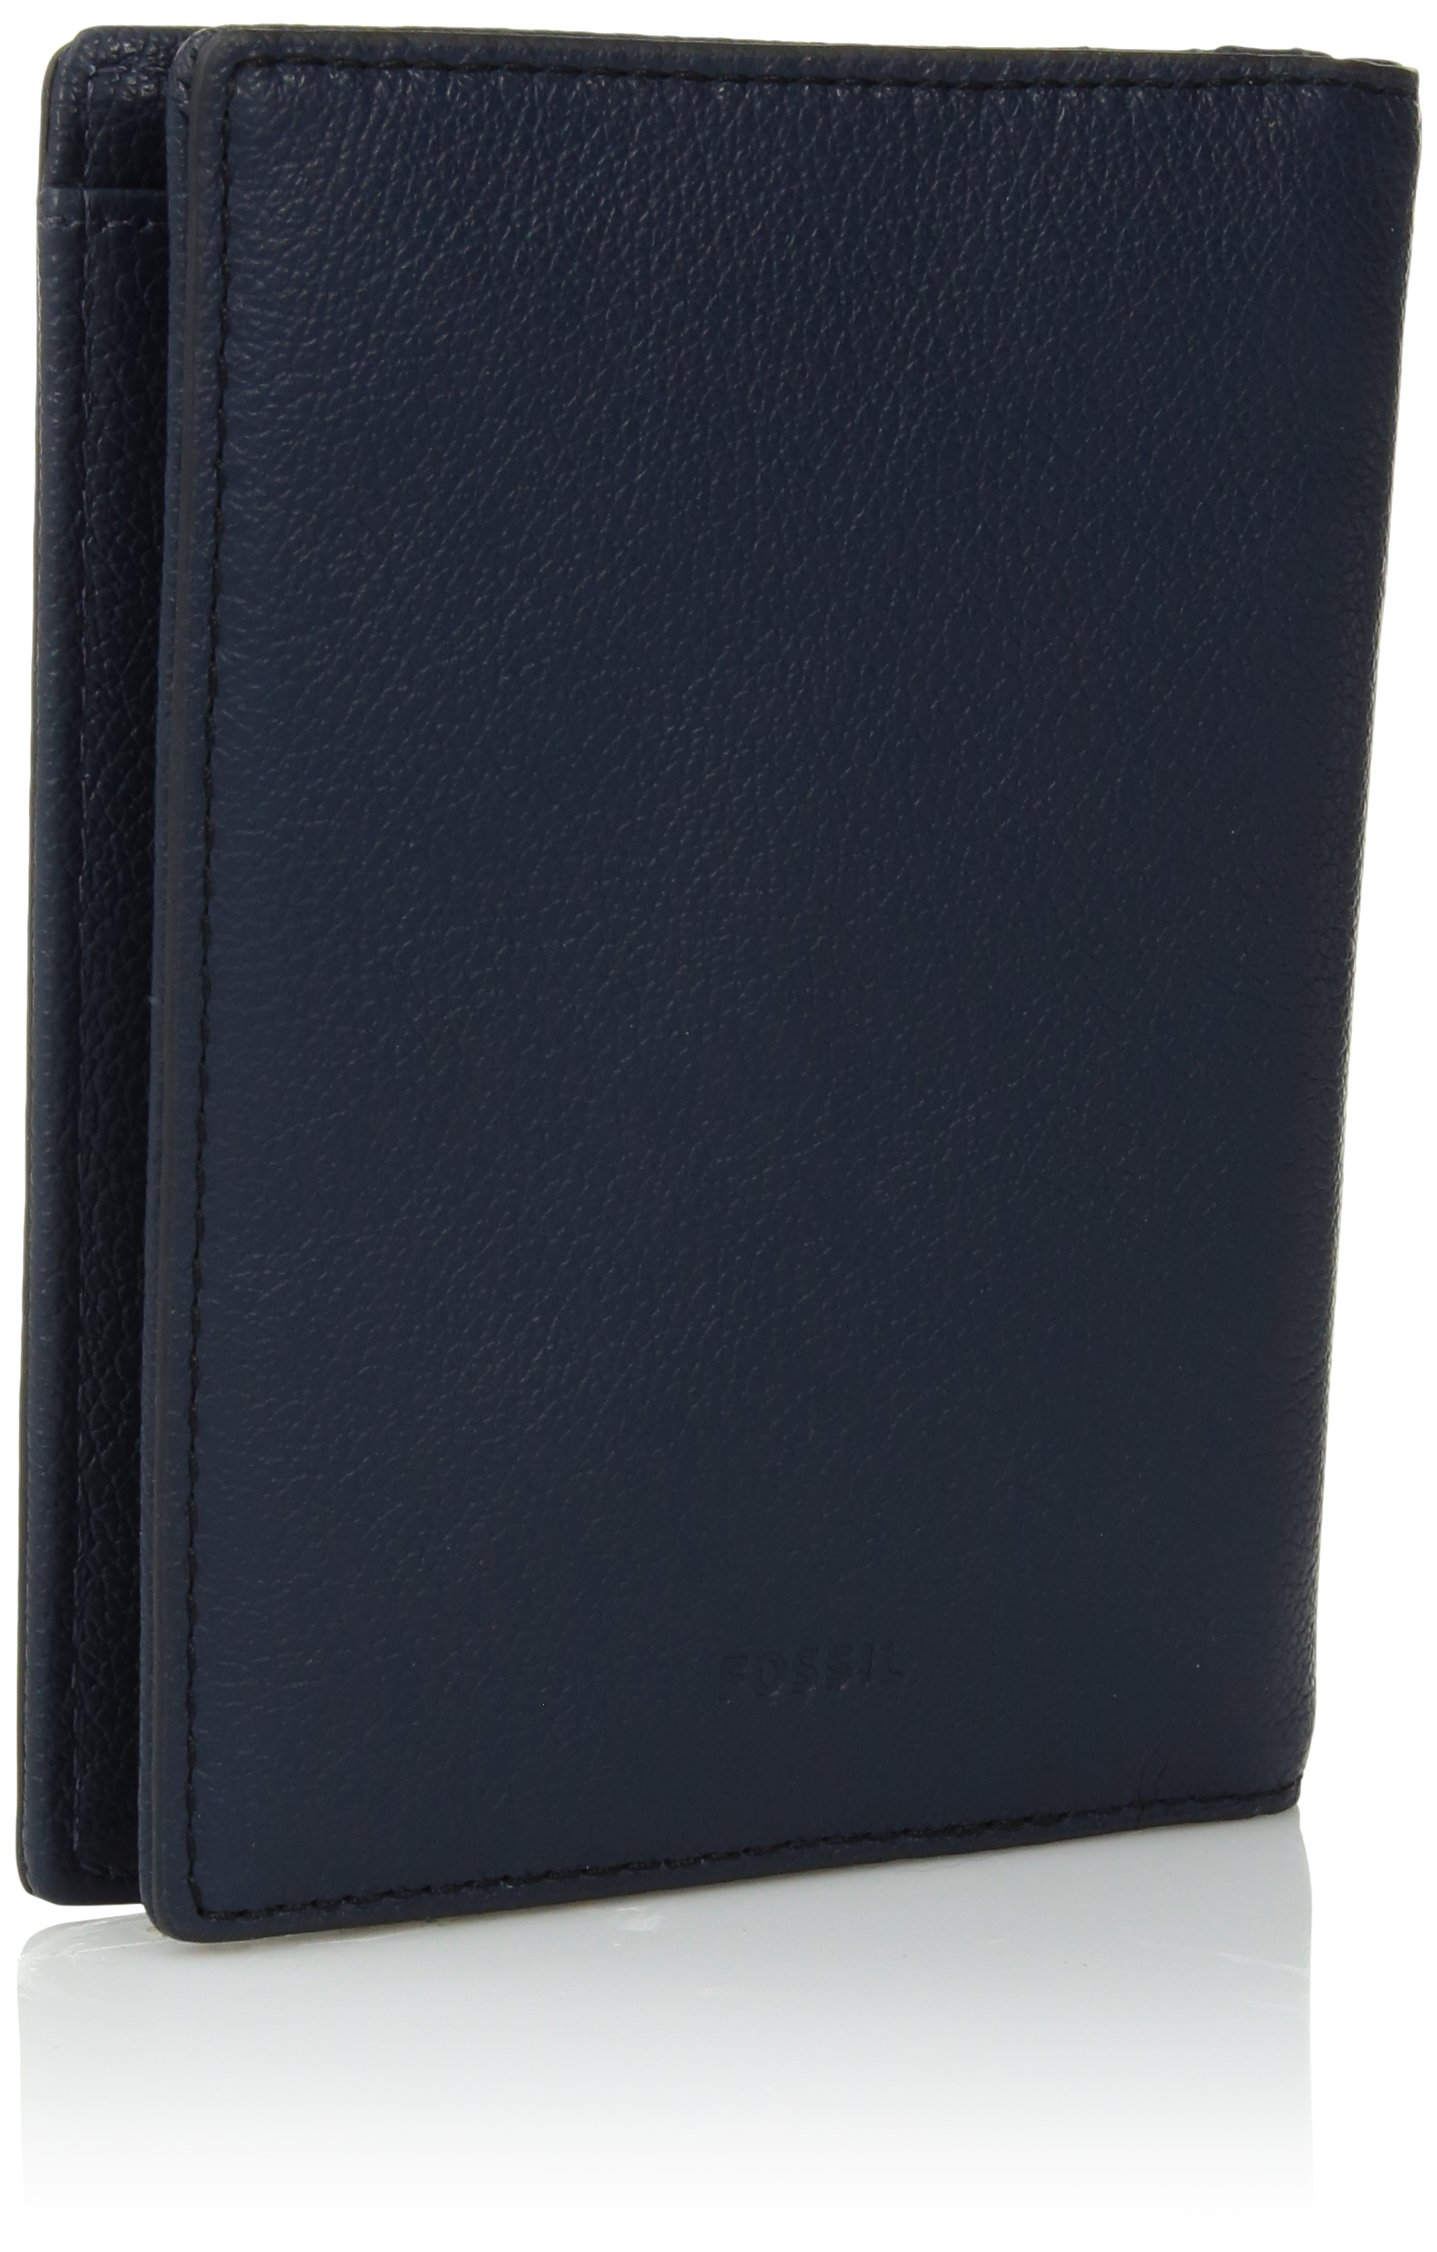 Fossil RFID Passport CASE Wallet, Midnight Navy Fringe by Fossil (Image #2)